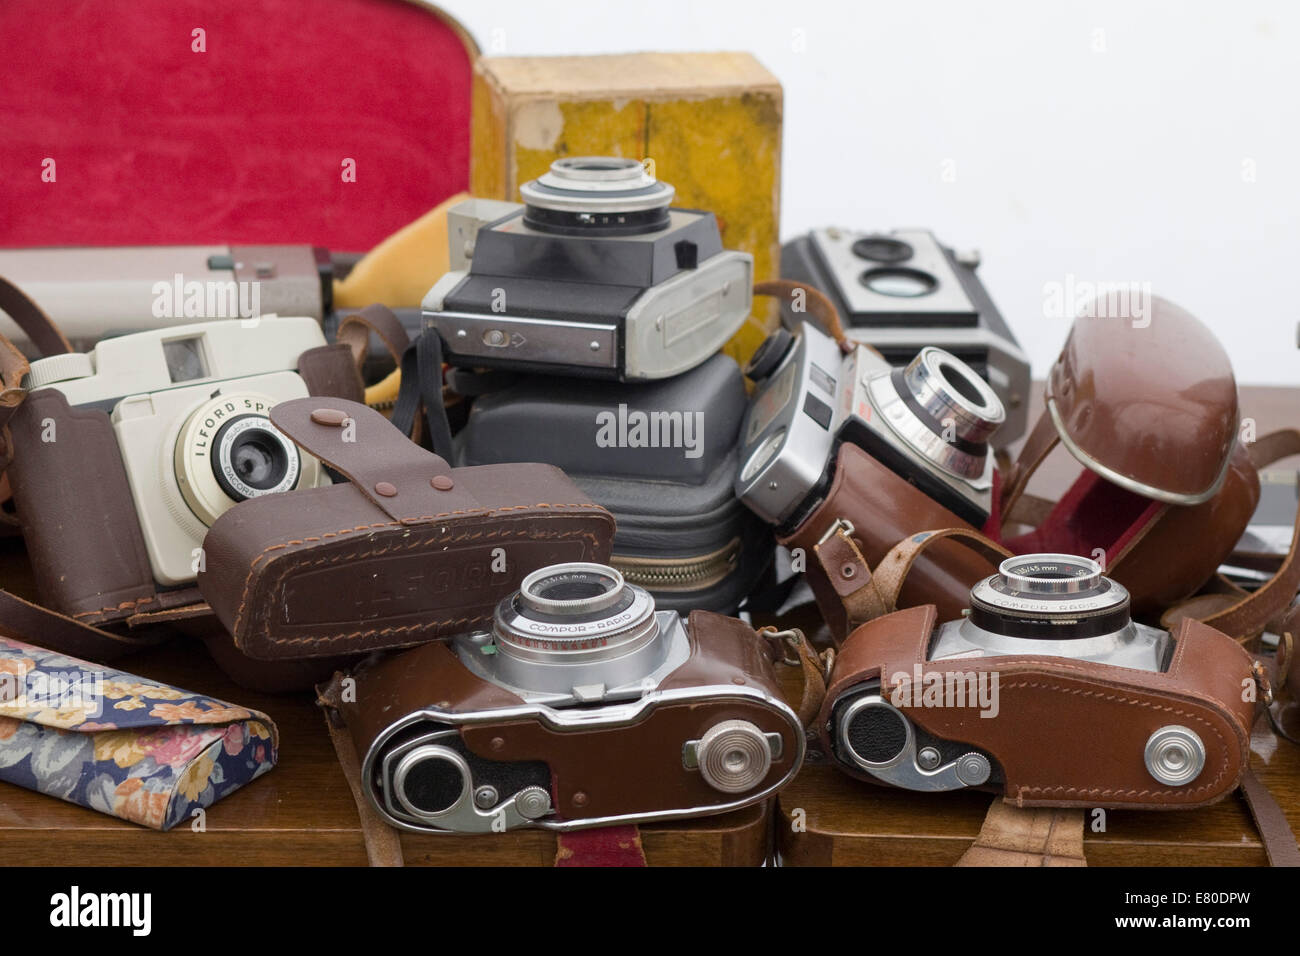 Collection of vintage cameras on a table - Stock Image